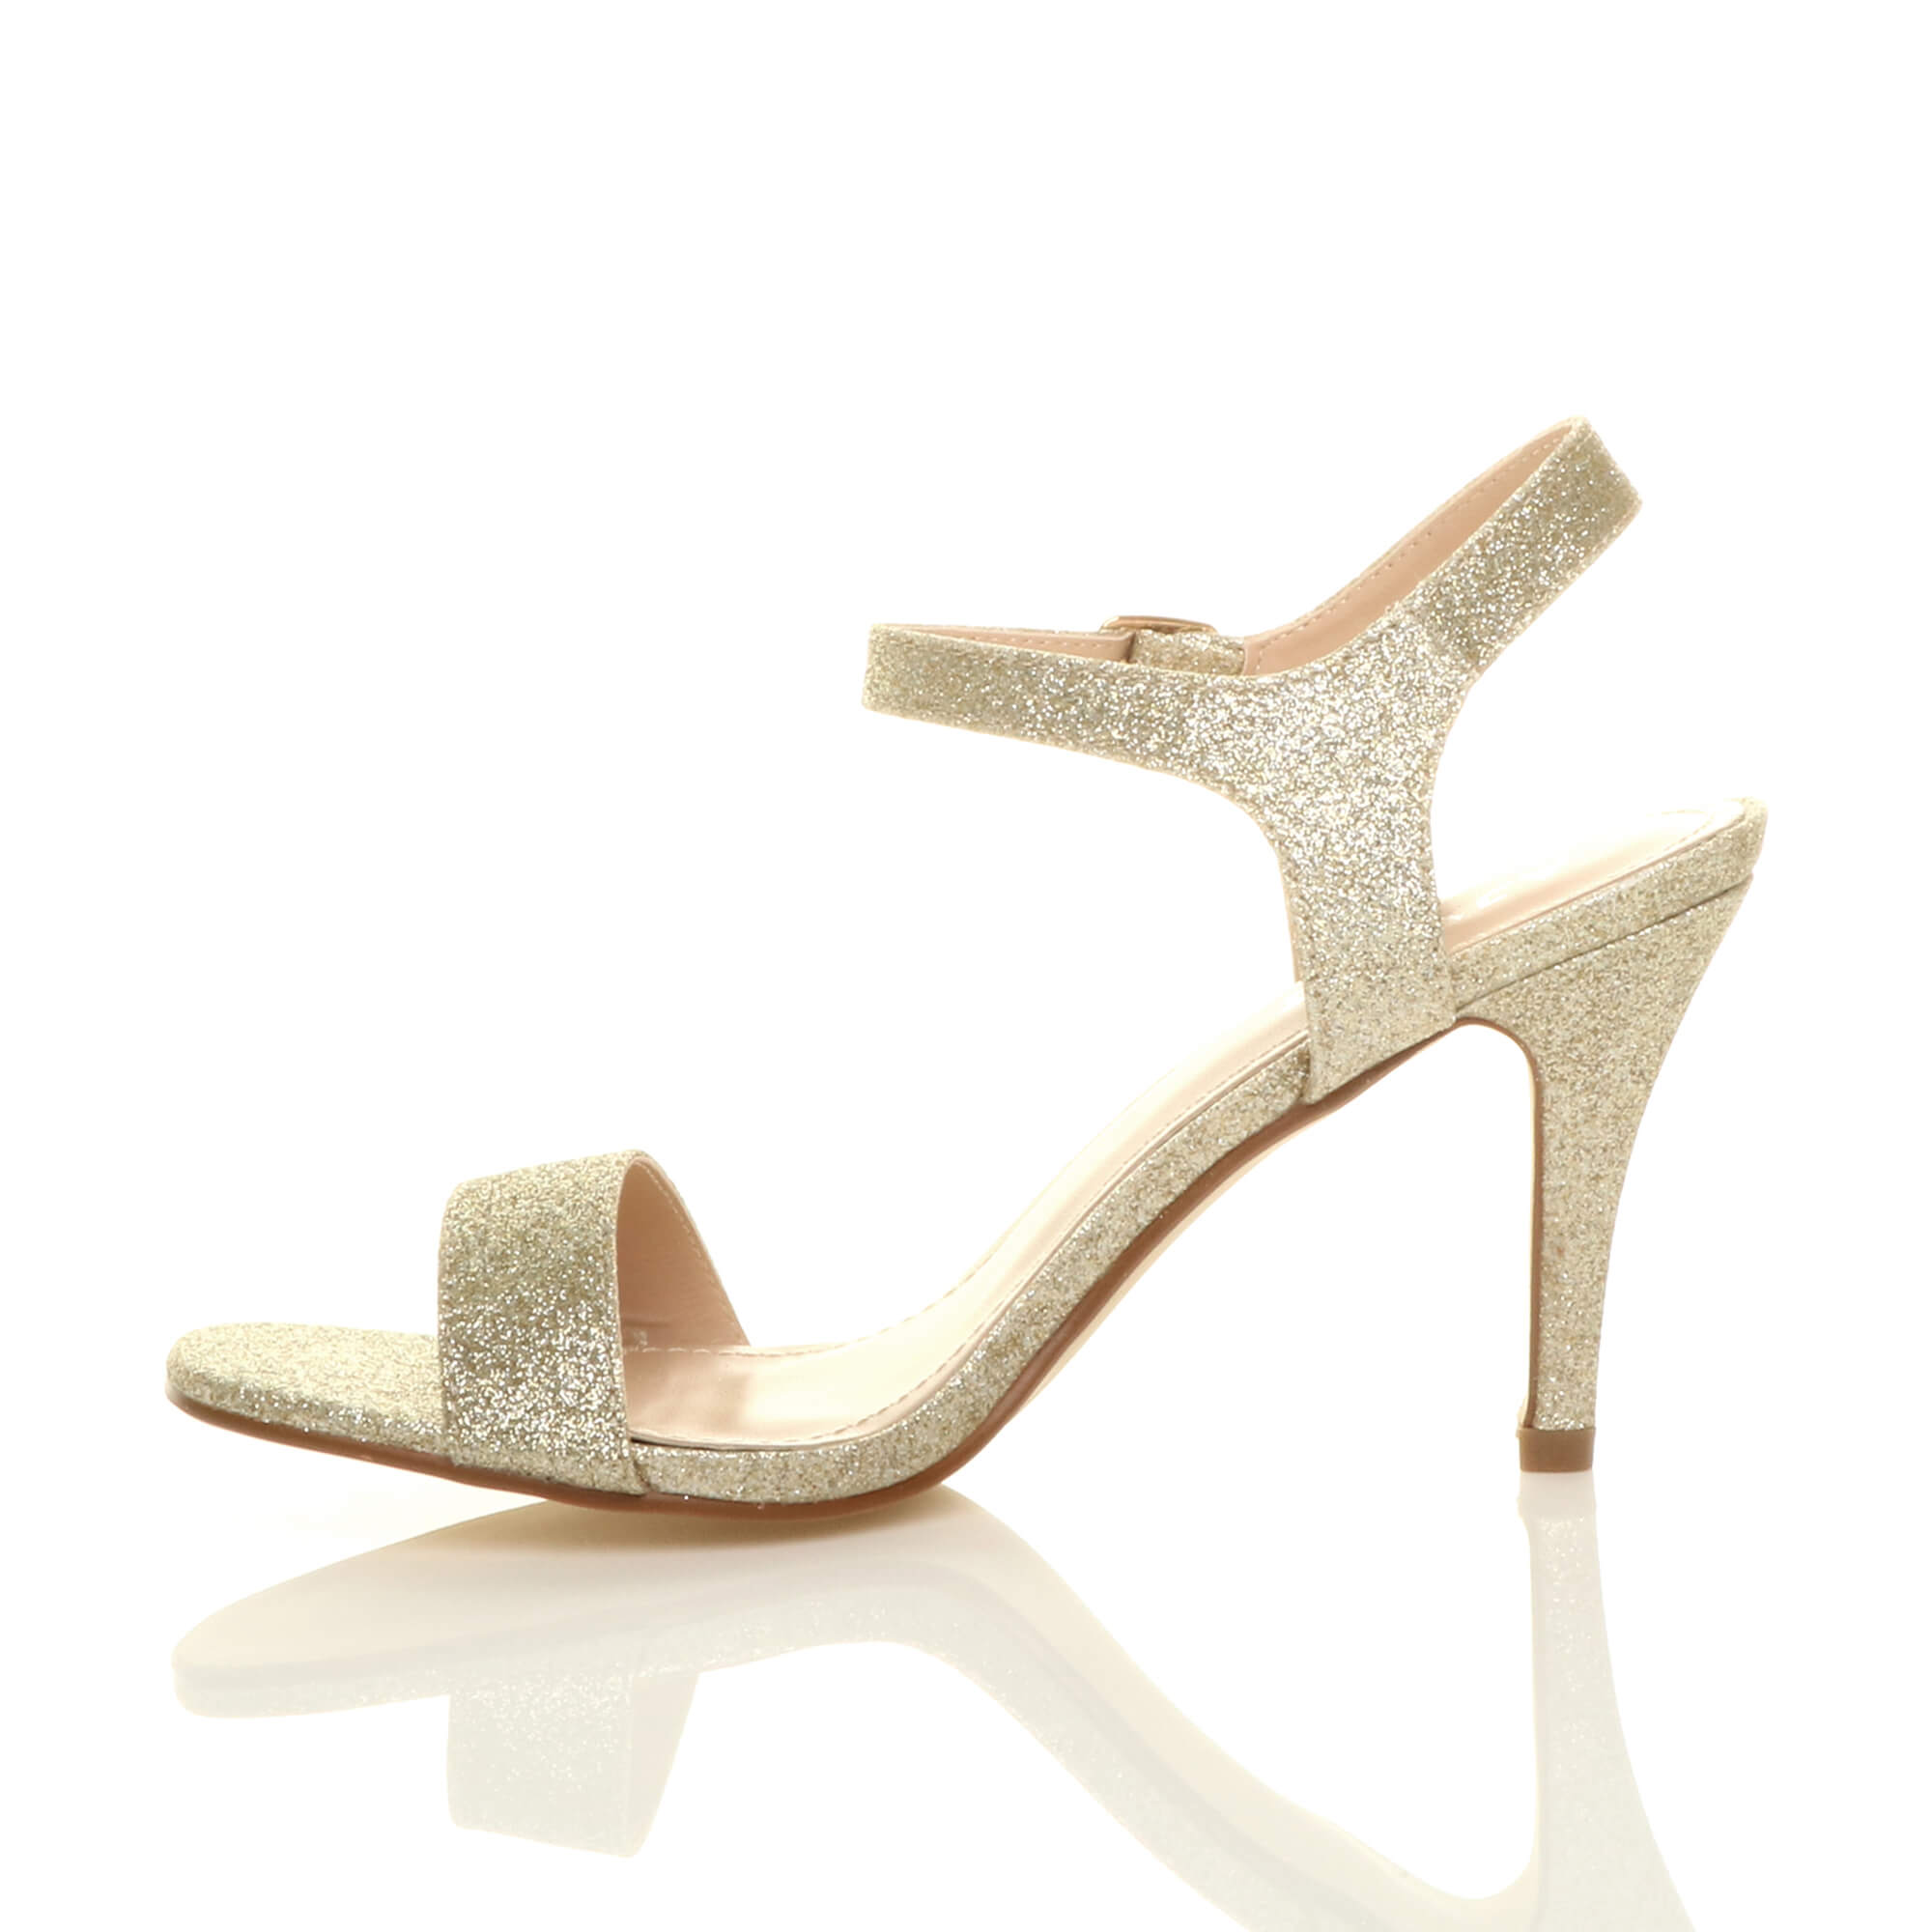 WOMENS-LADIES-HIGH-HEEL-BUCKLE-STRAPPY-BASIC-BARELY-THERE-SANDALS-SHOES-SIZE thumbnail 39